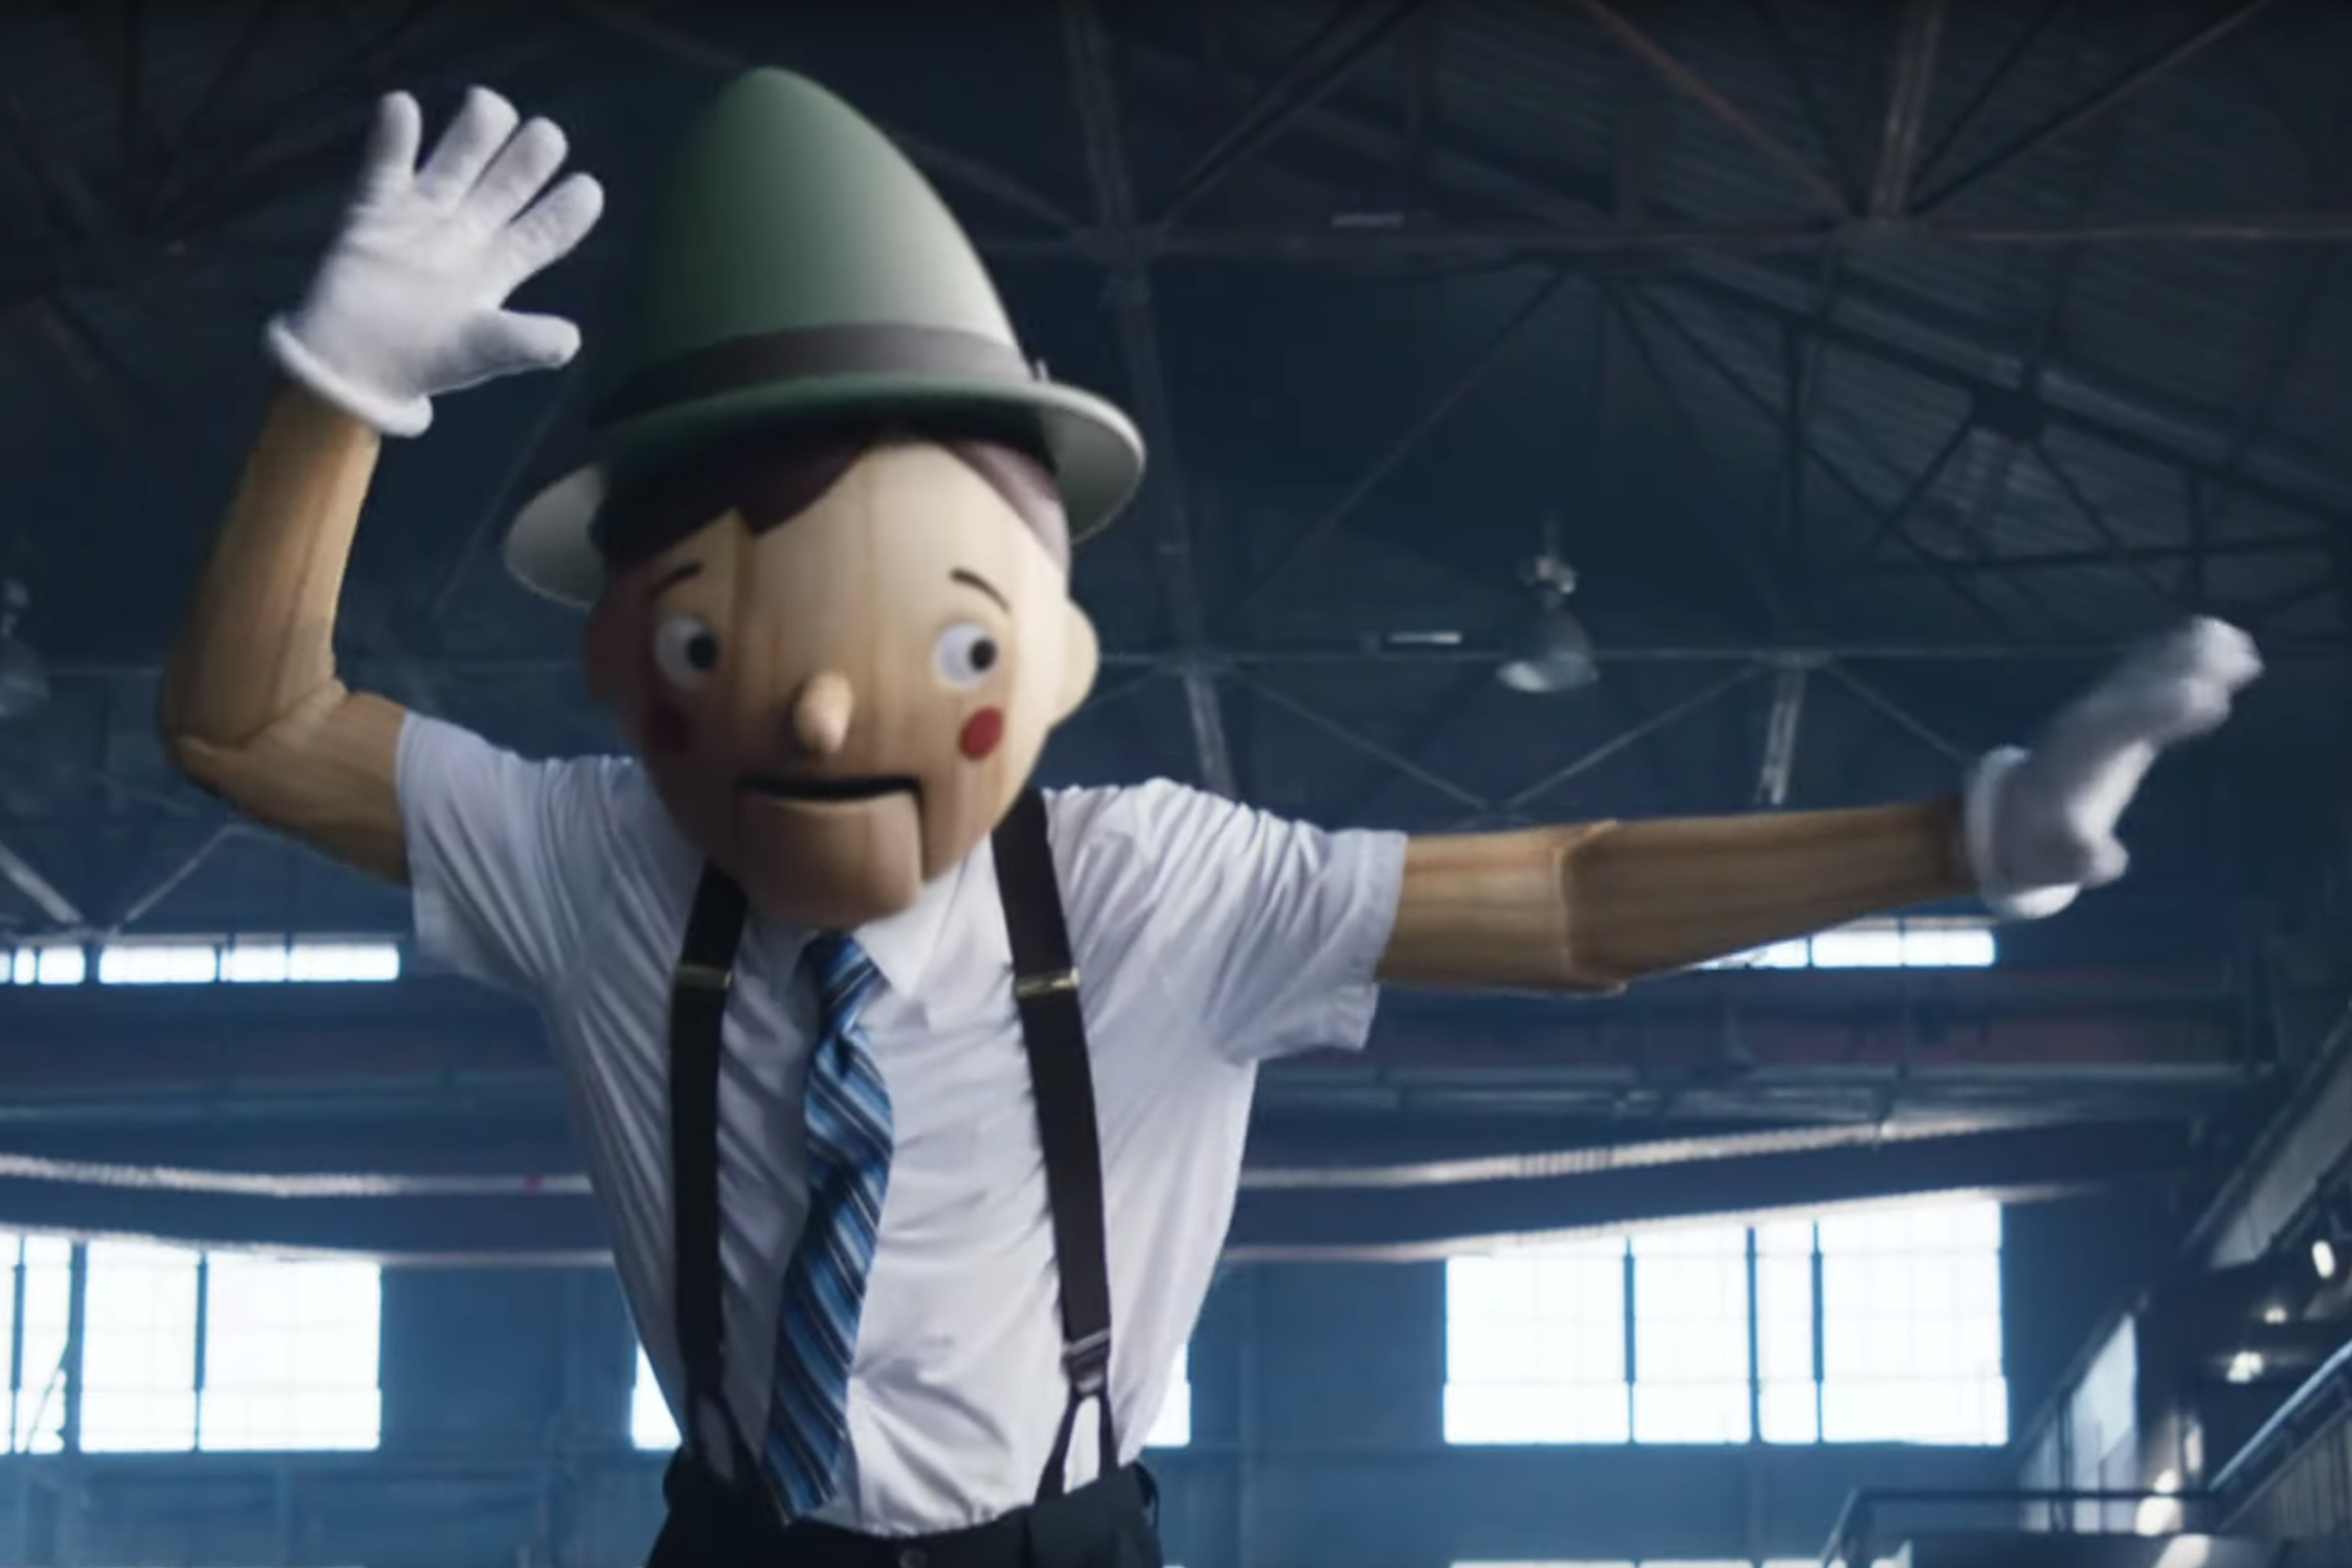 Watch the newest commercials on TV from Uber, Geico, Tide and more